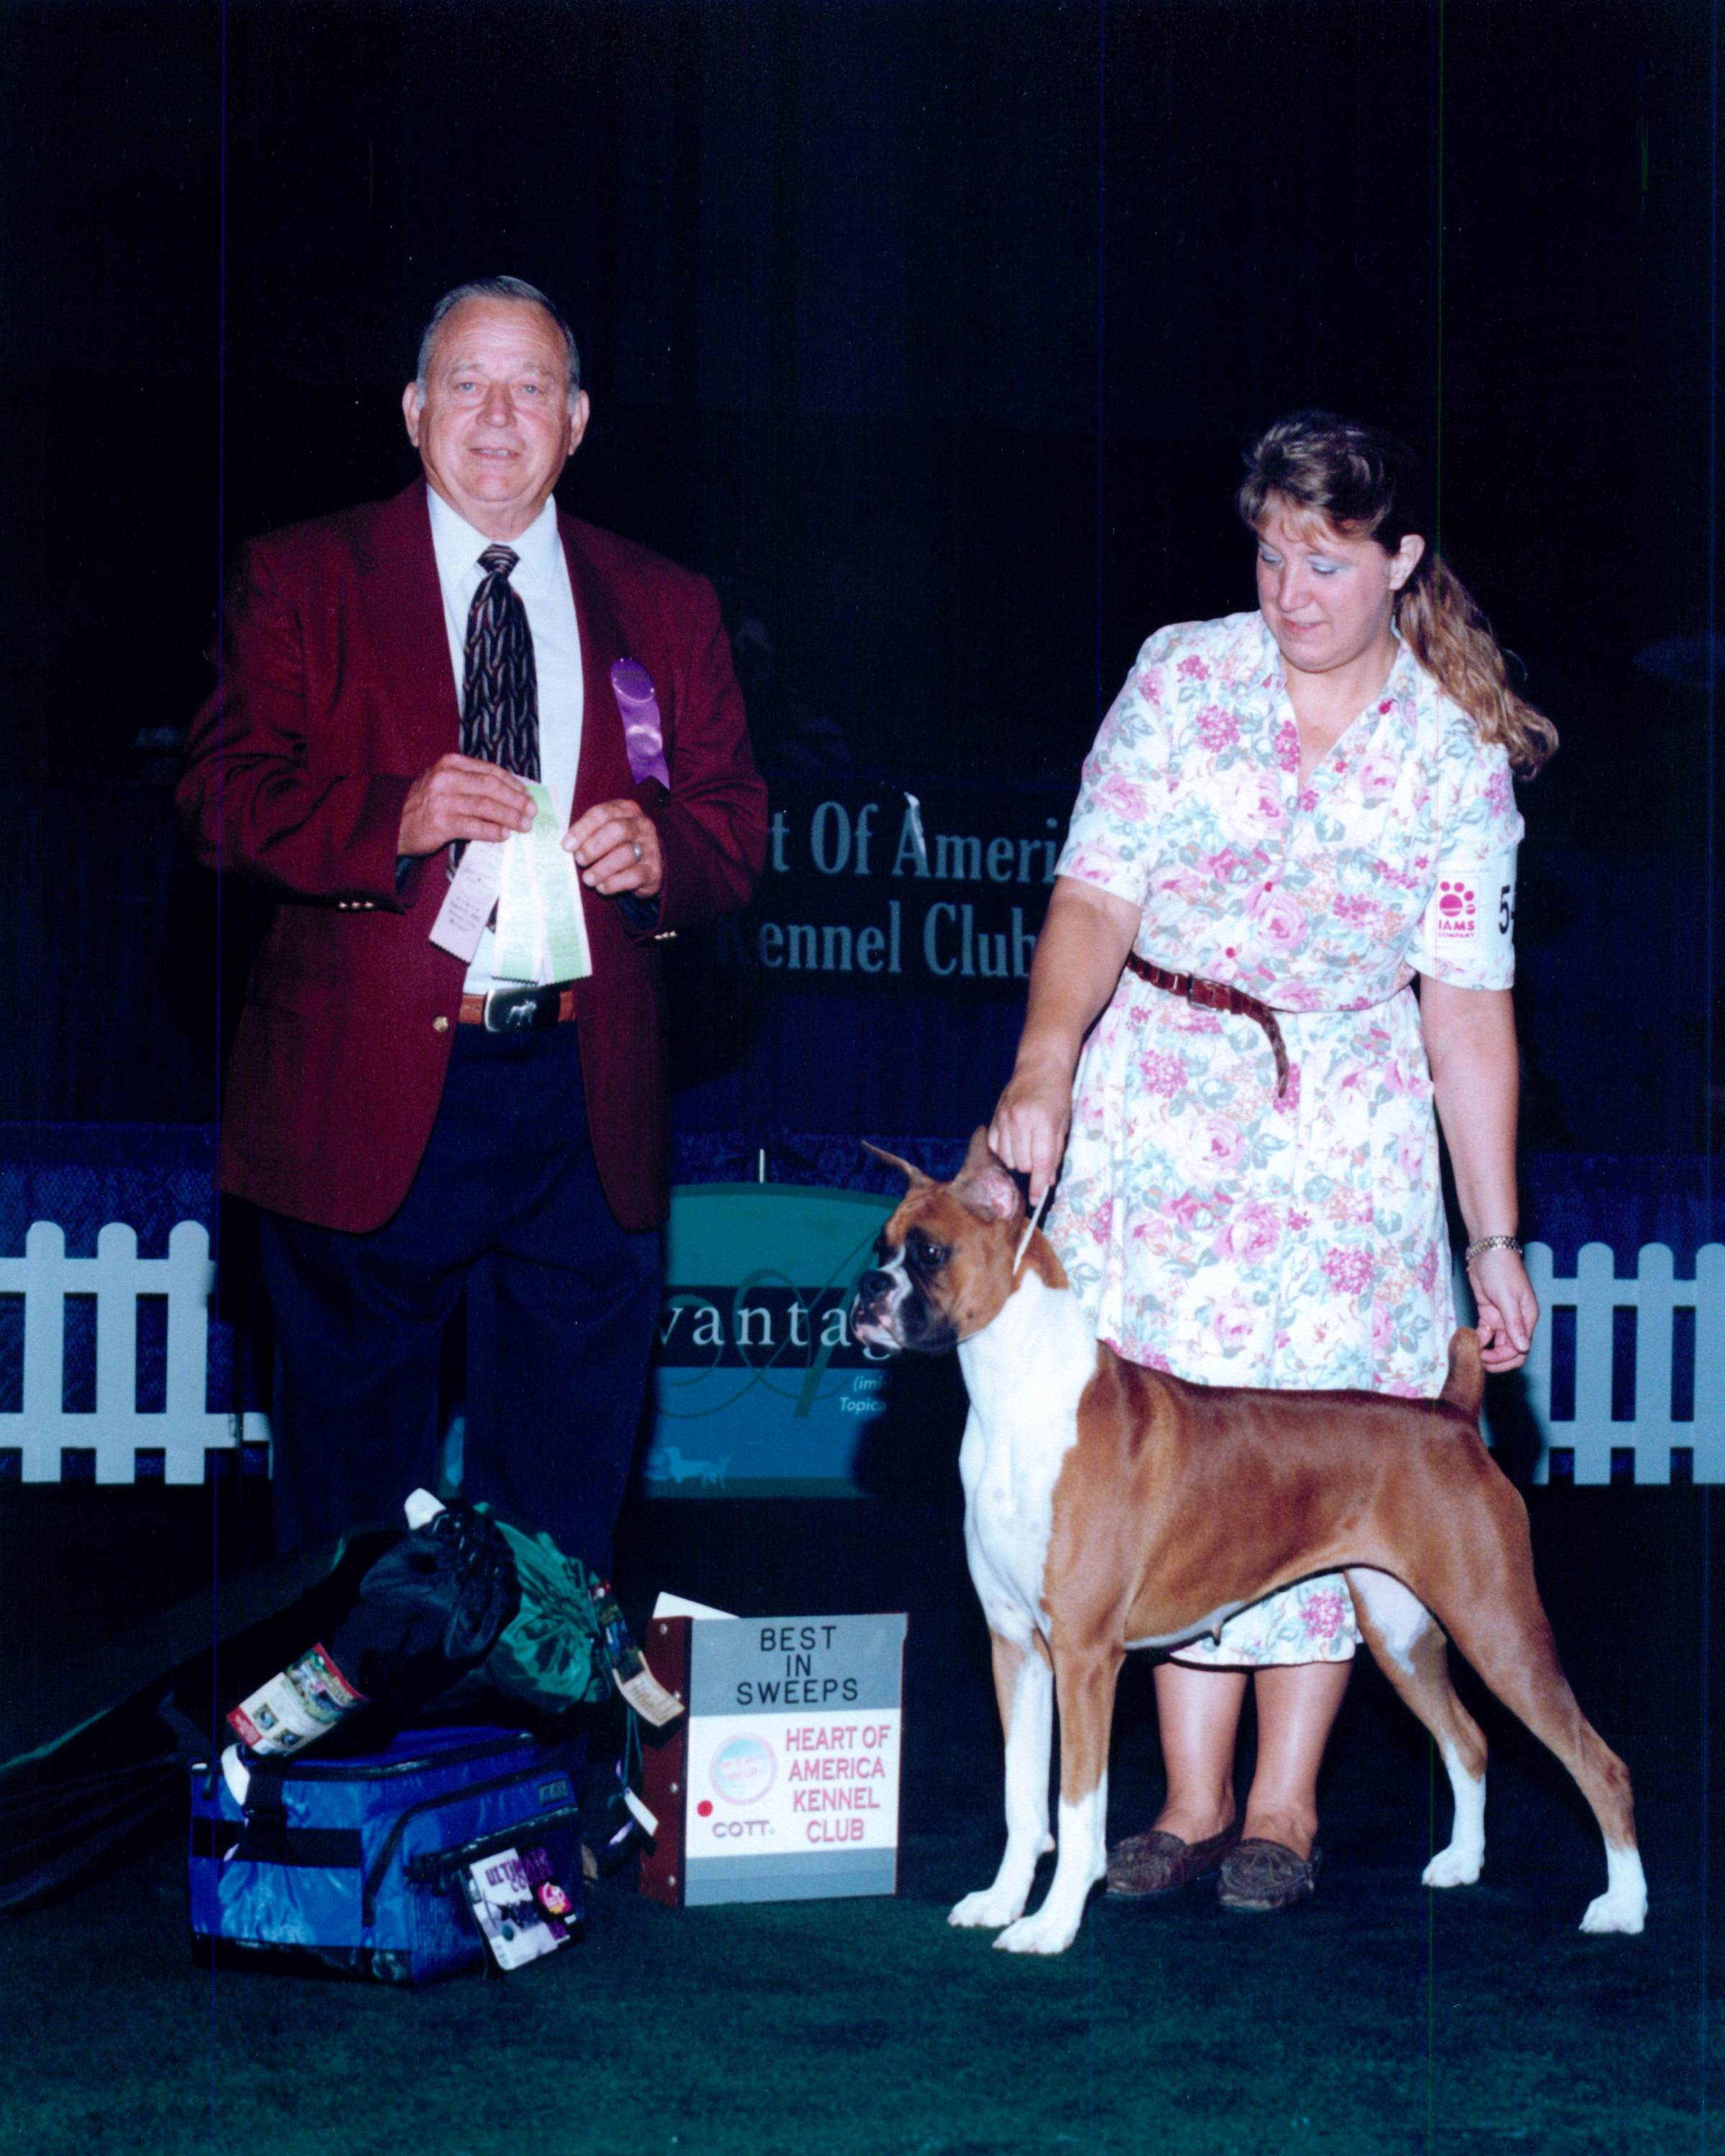 Grand Sweepstakes, Best Puppy @ 2002 Specialty Show #2